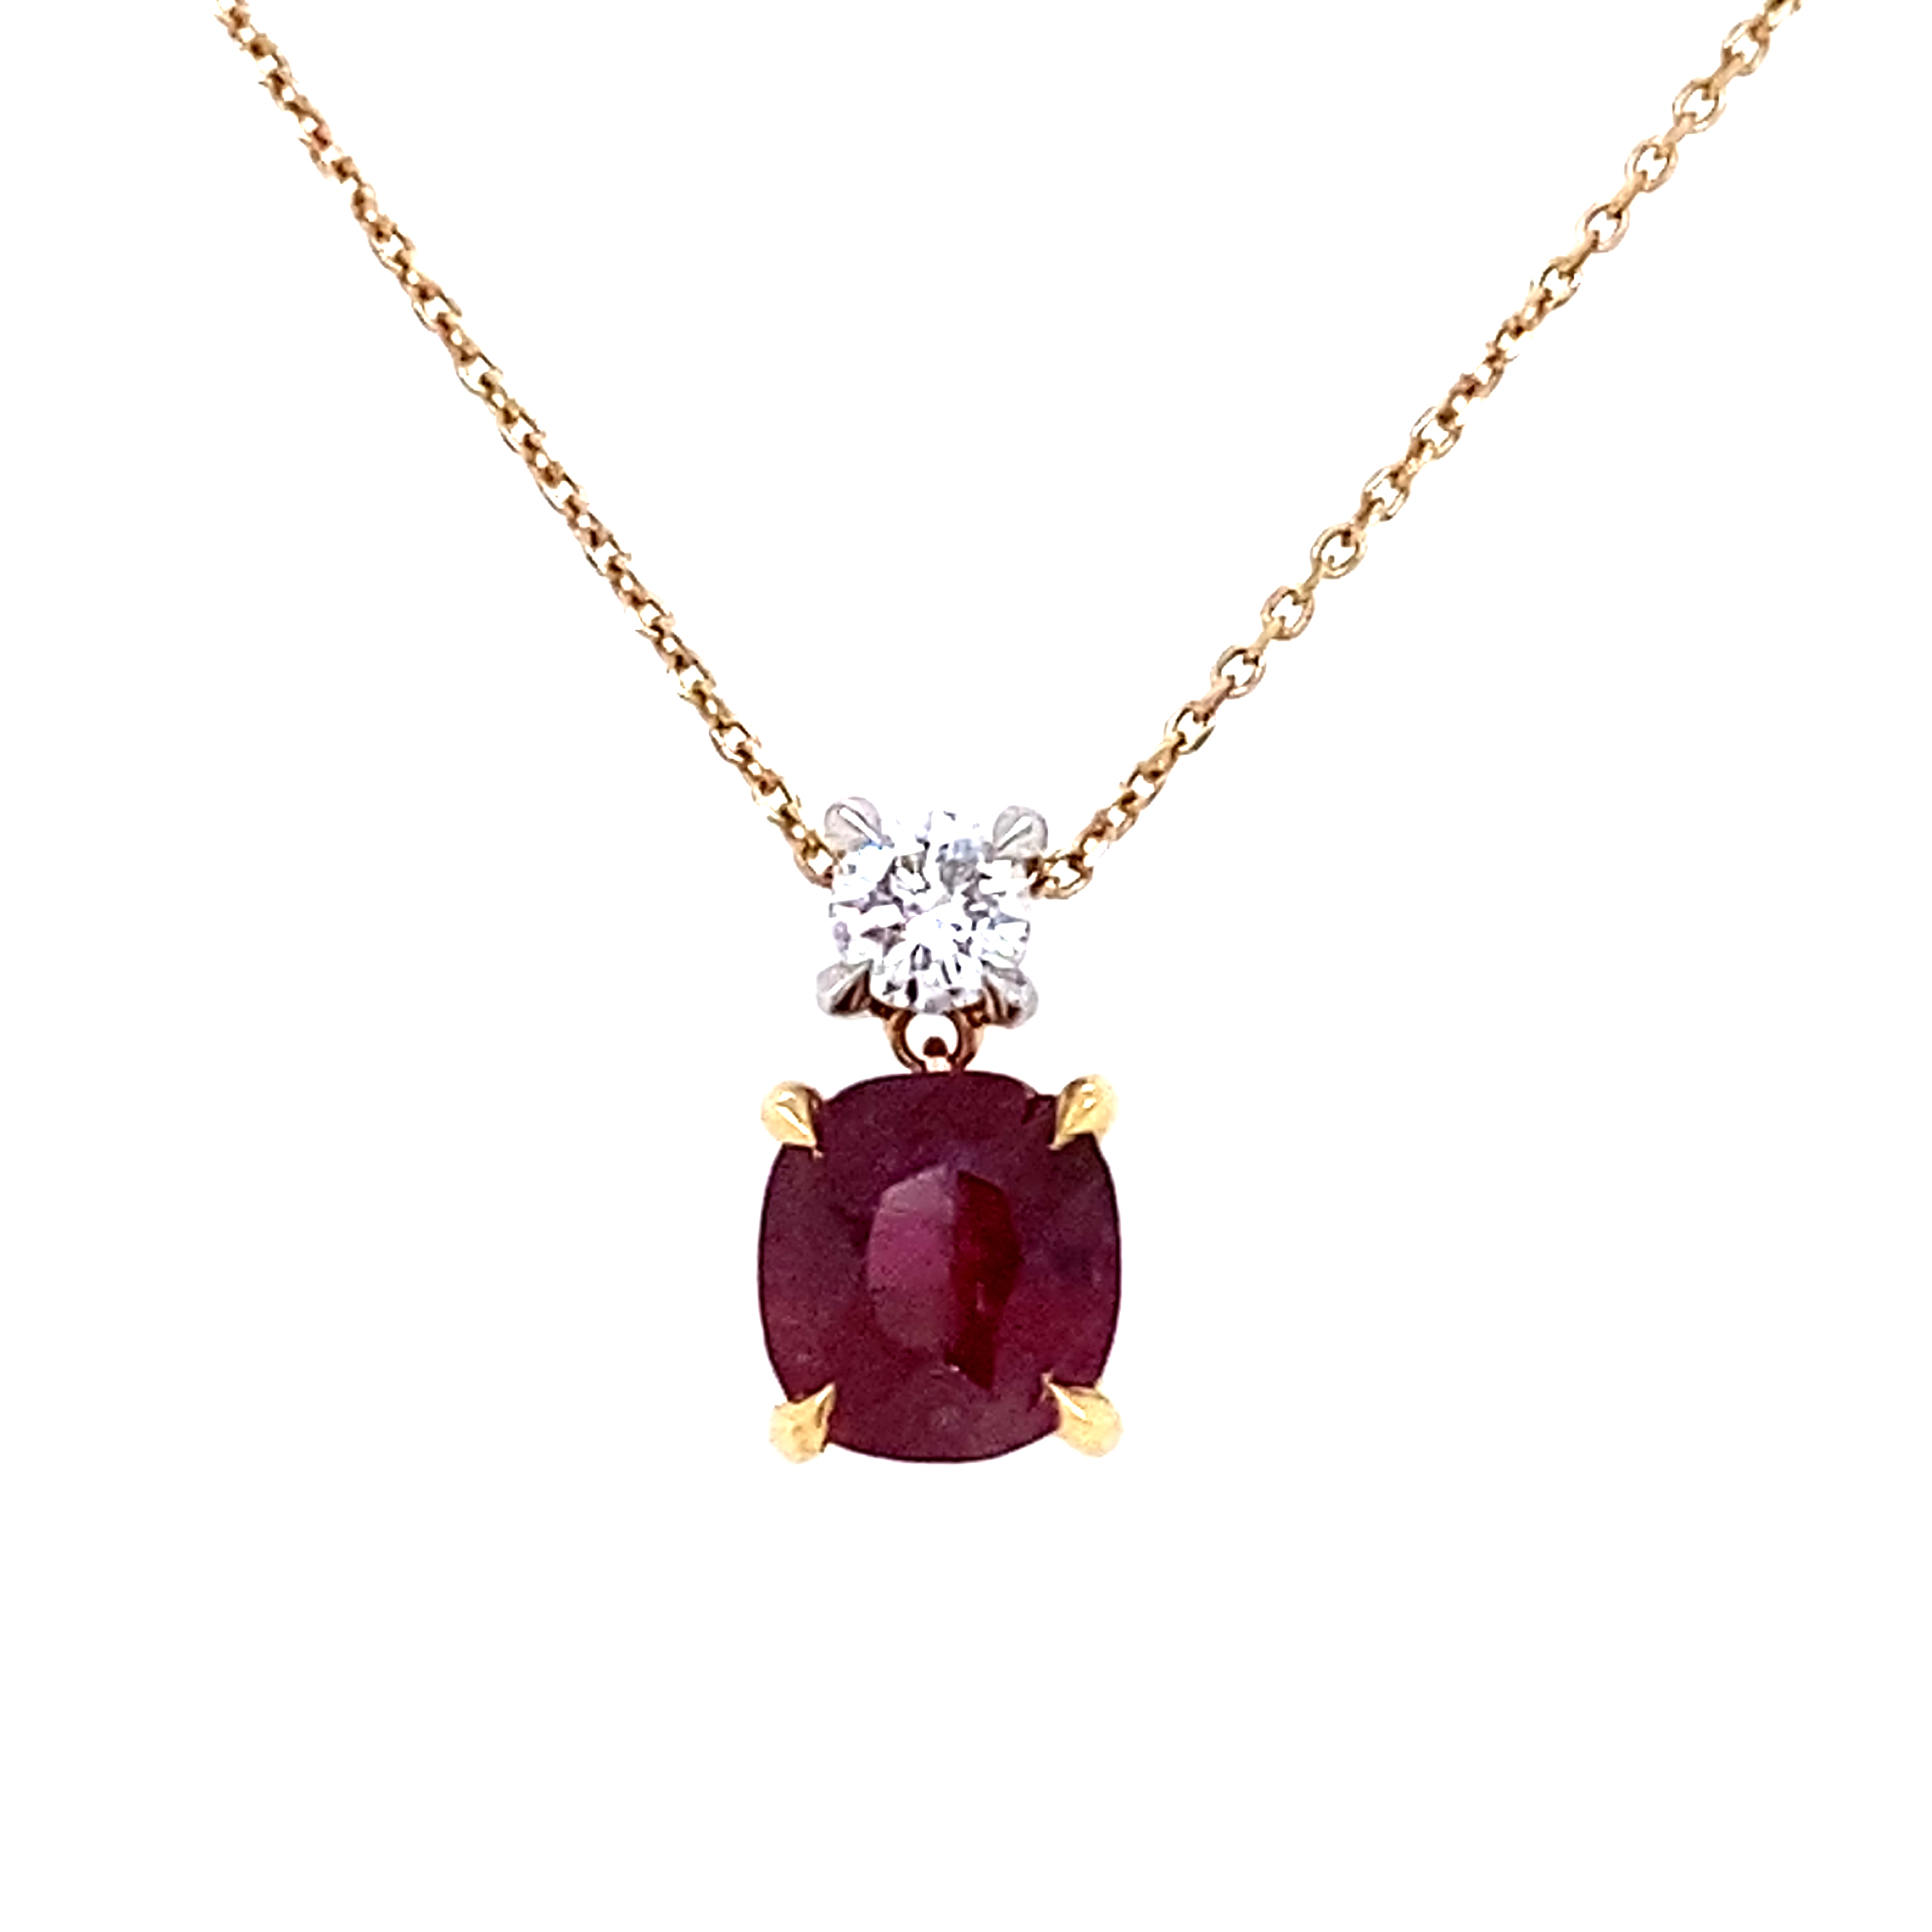 A Cushion Shaped Ruby Pendant with A Diamond Accent Bail